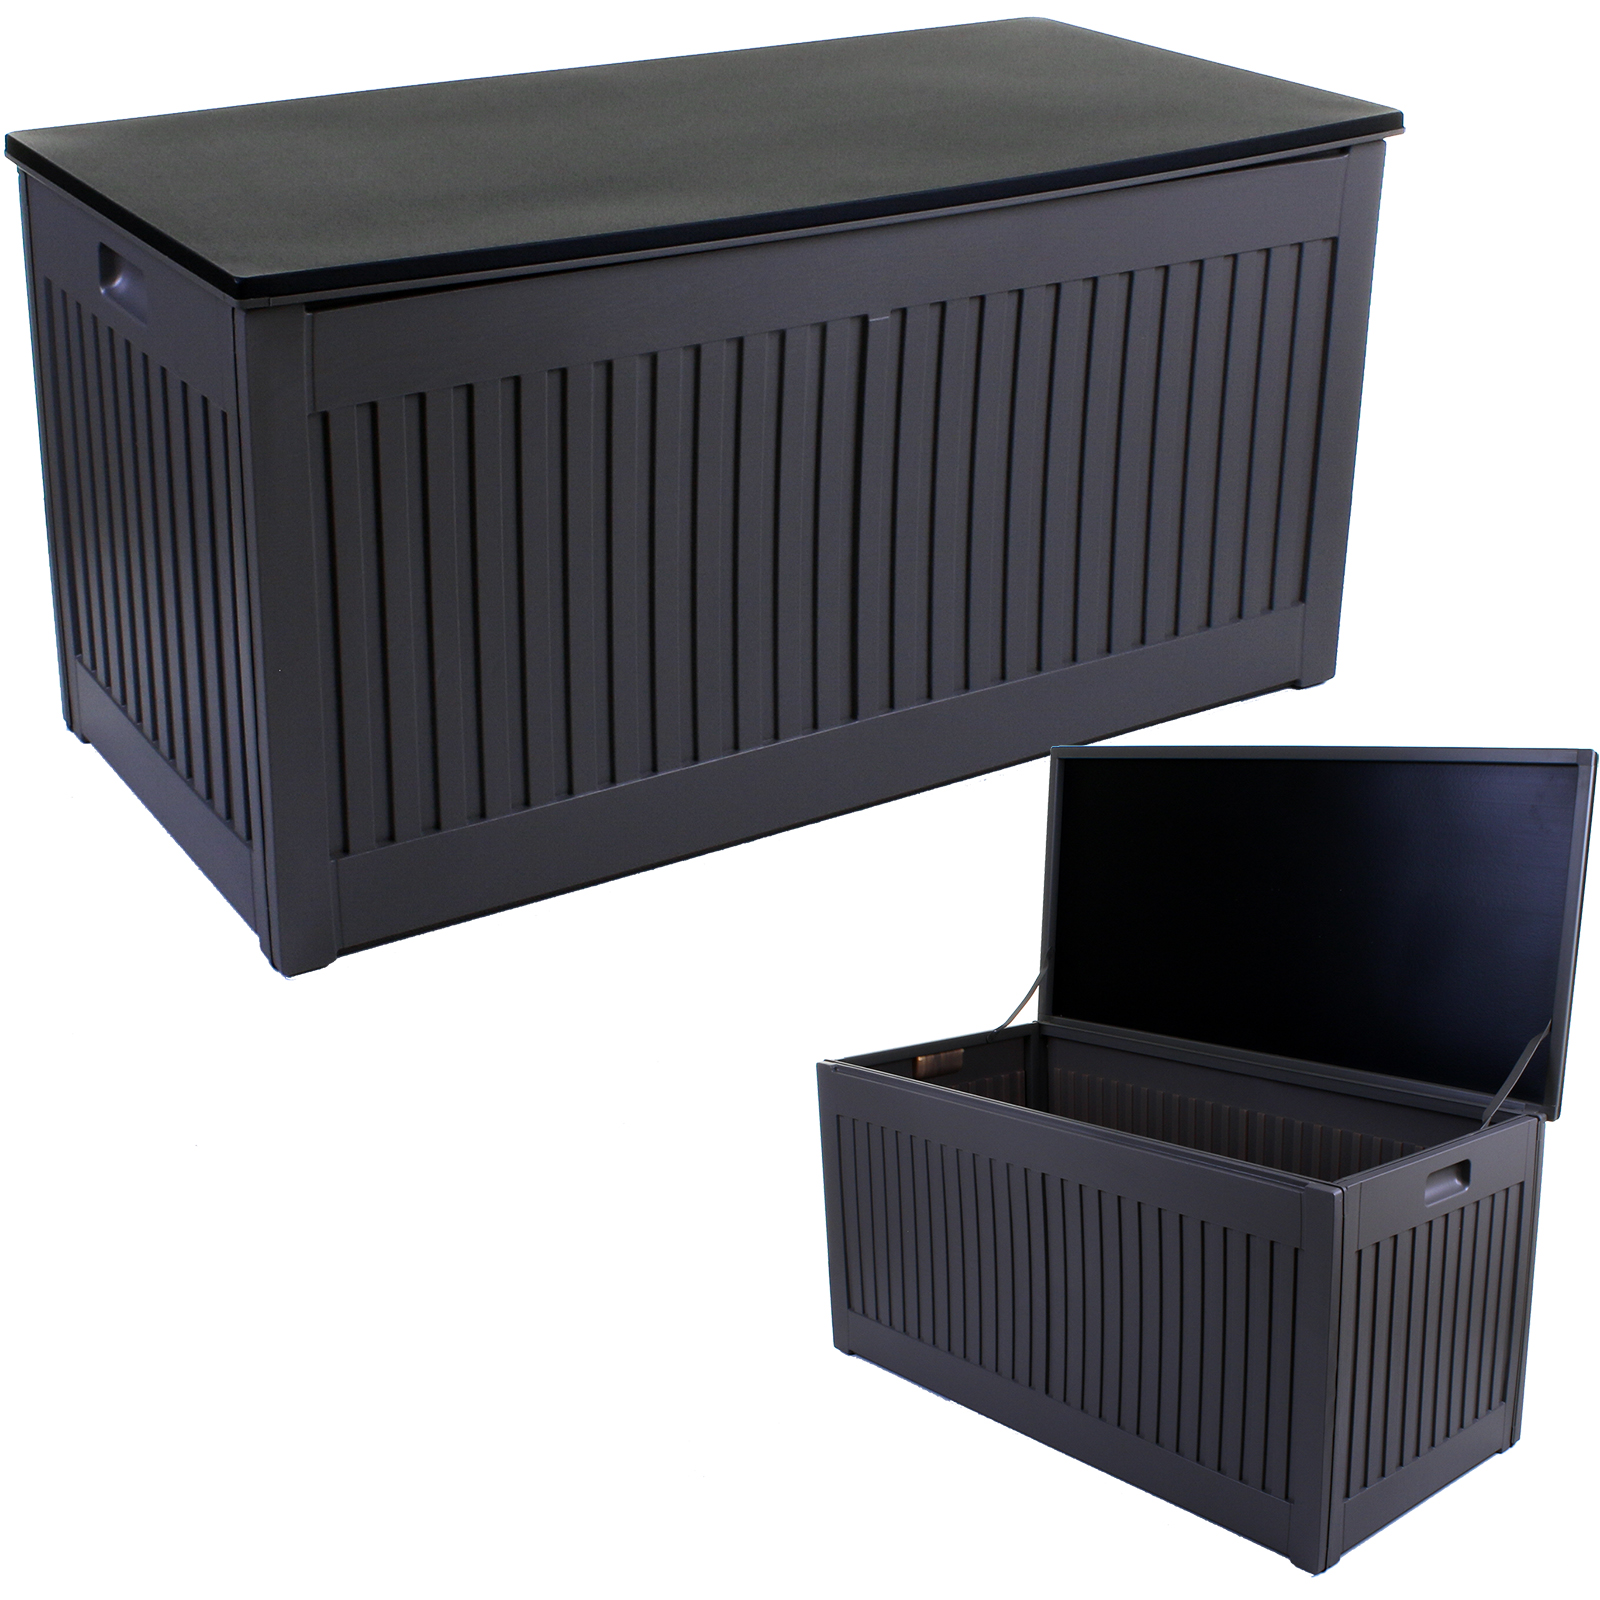 Details About 270l Outdoor Garden Storage Box Plastic Utility Chest Cushions Toys Furniture